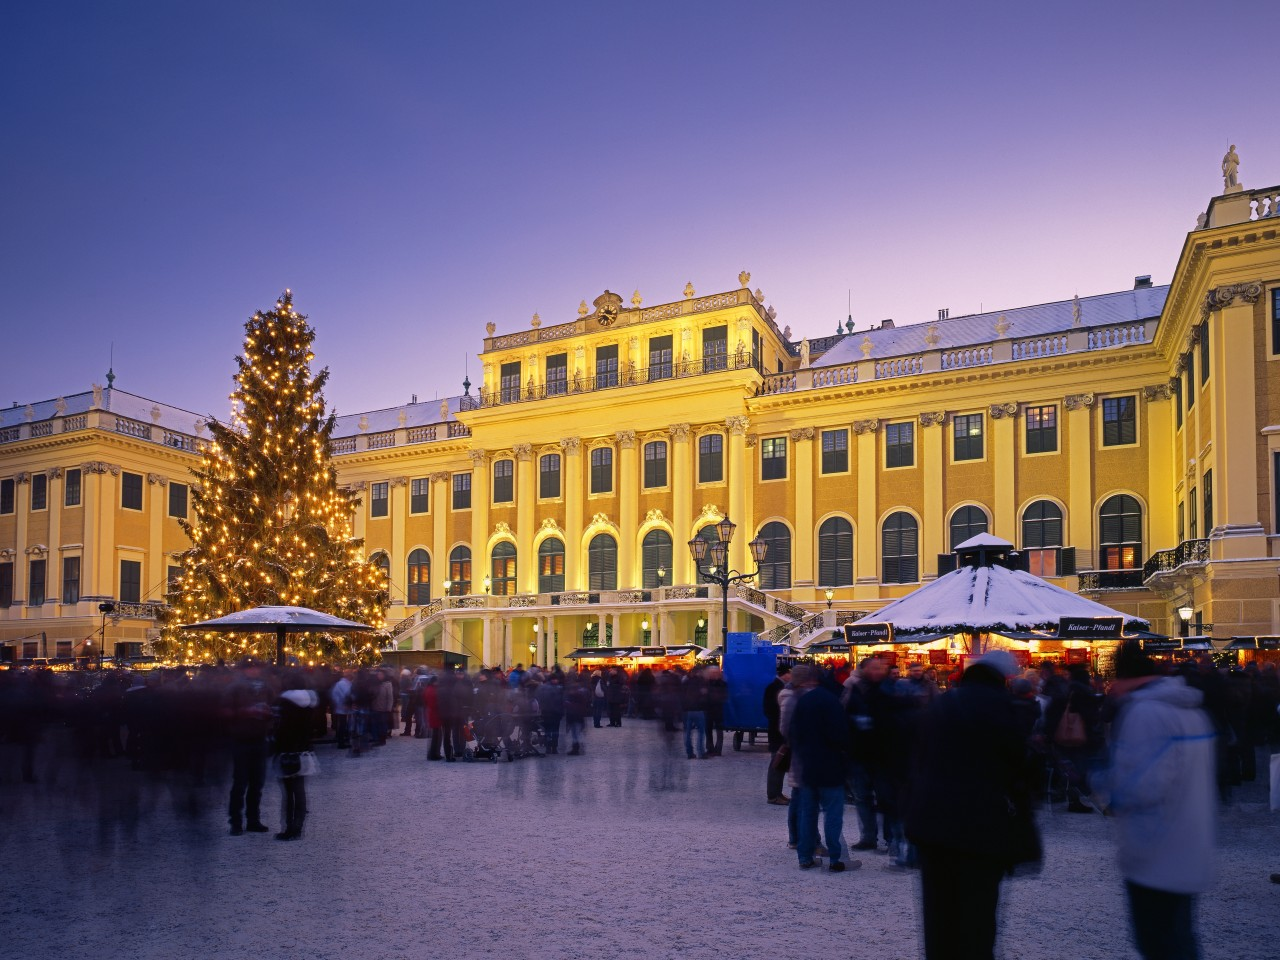 Imperial Vienna: Music,Art & Christmas Markets: 29 Nov 19